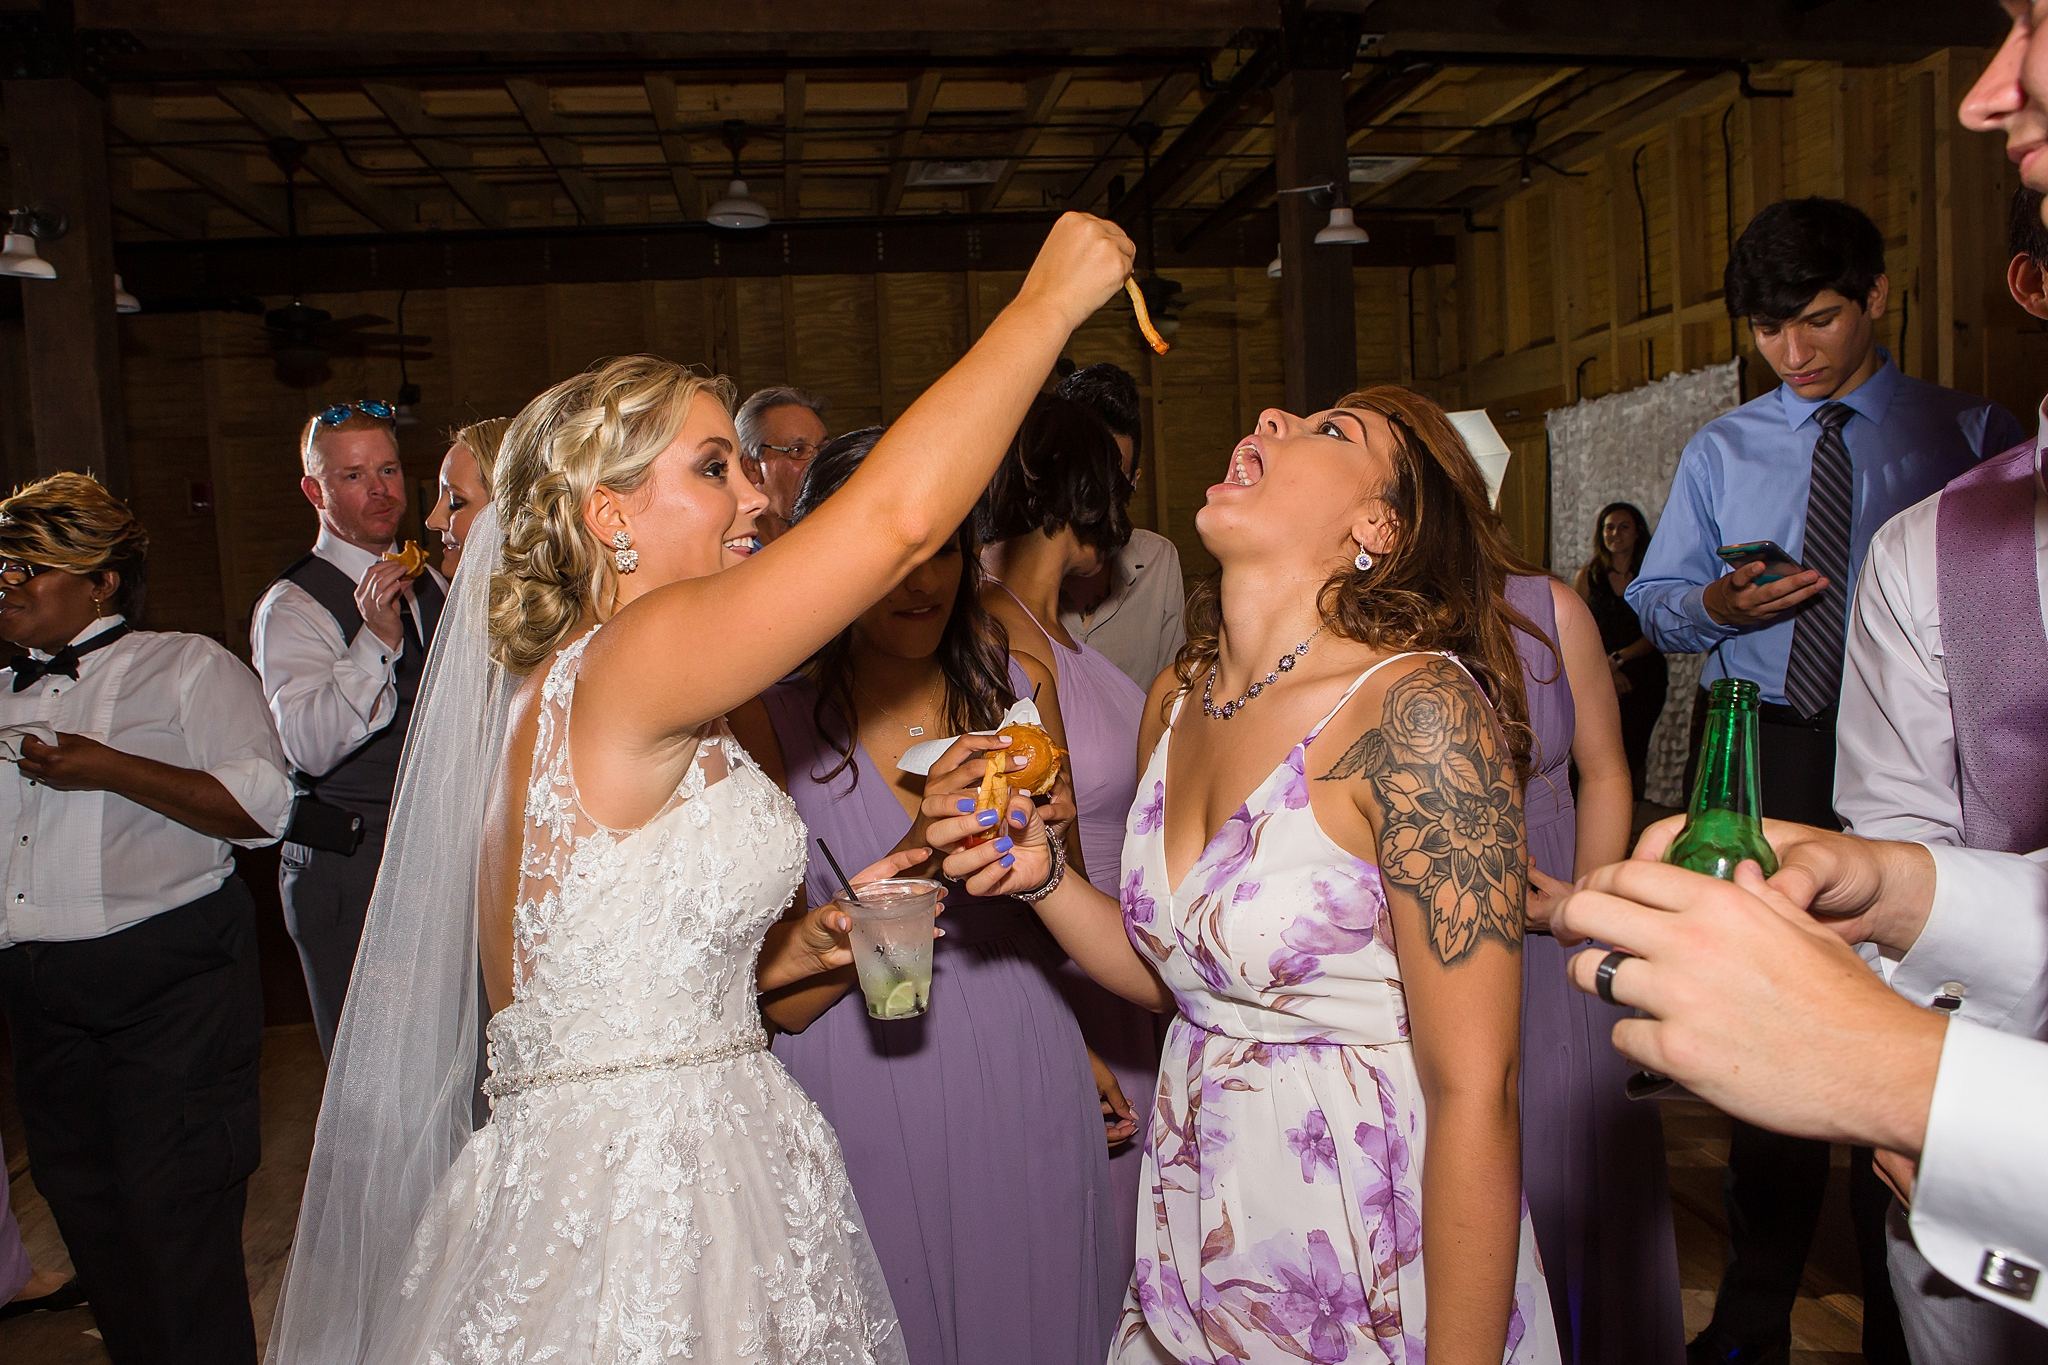 Catering_capers_tallahassee_wedding.jpg